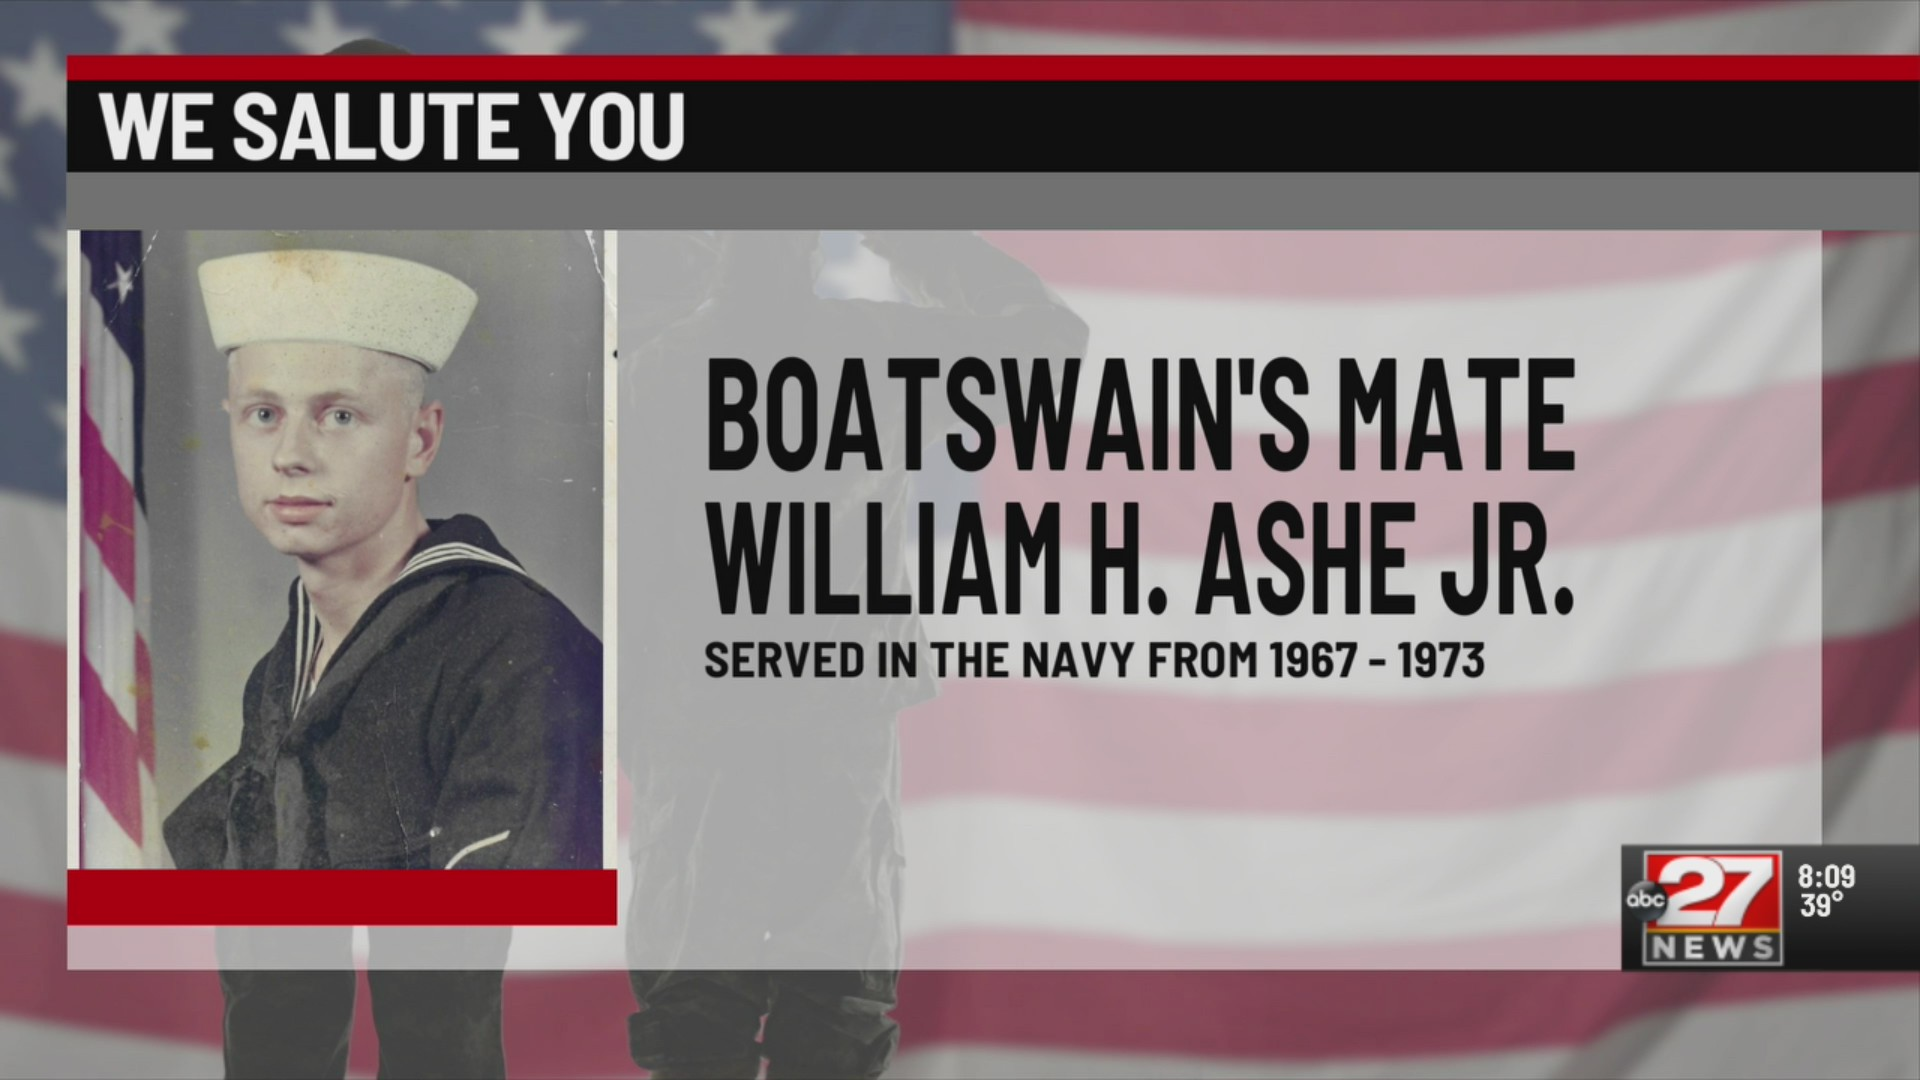 We salute you William H. Ashe Jr